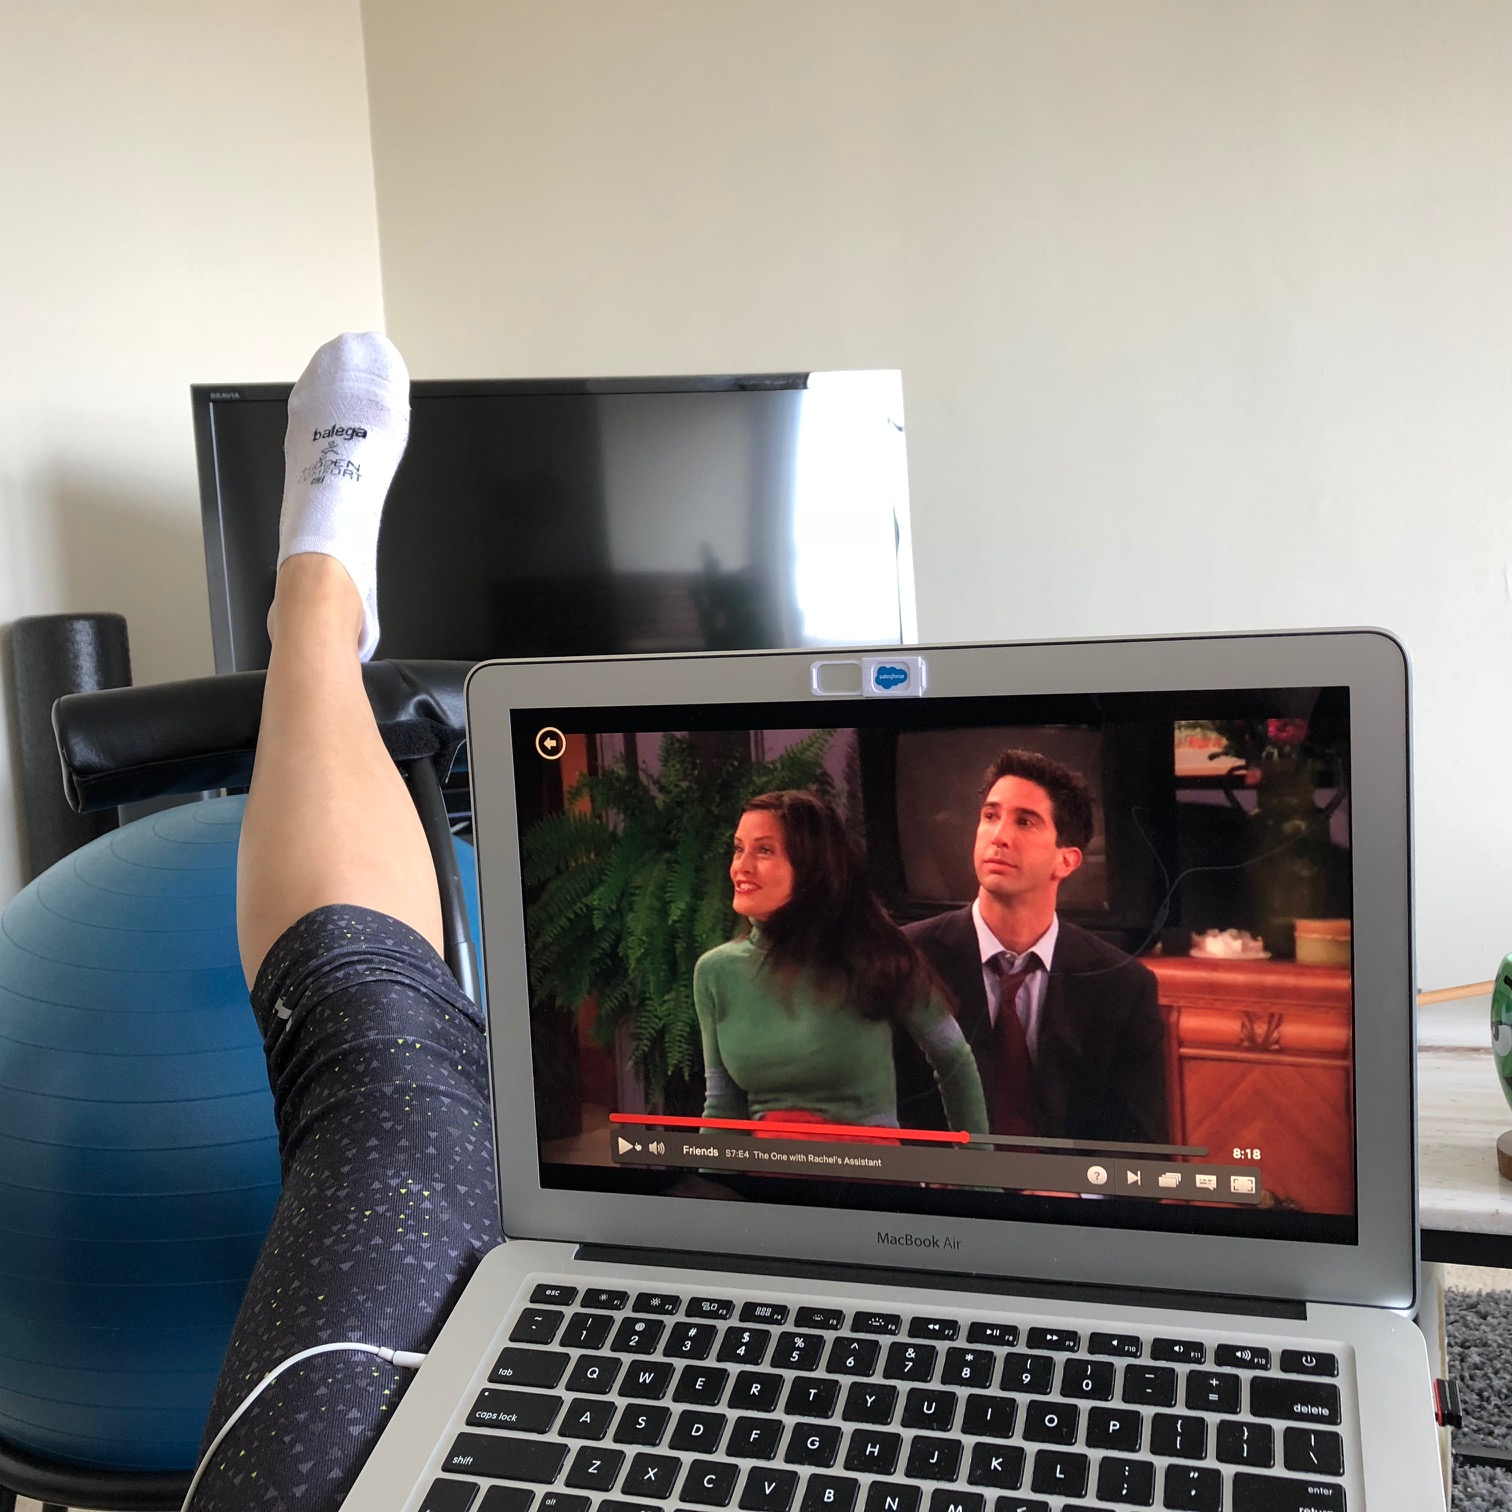 elevating my left leg while watching Friends